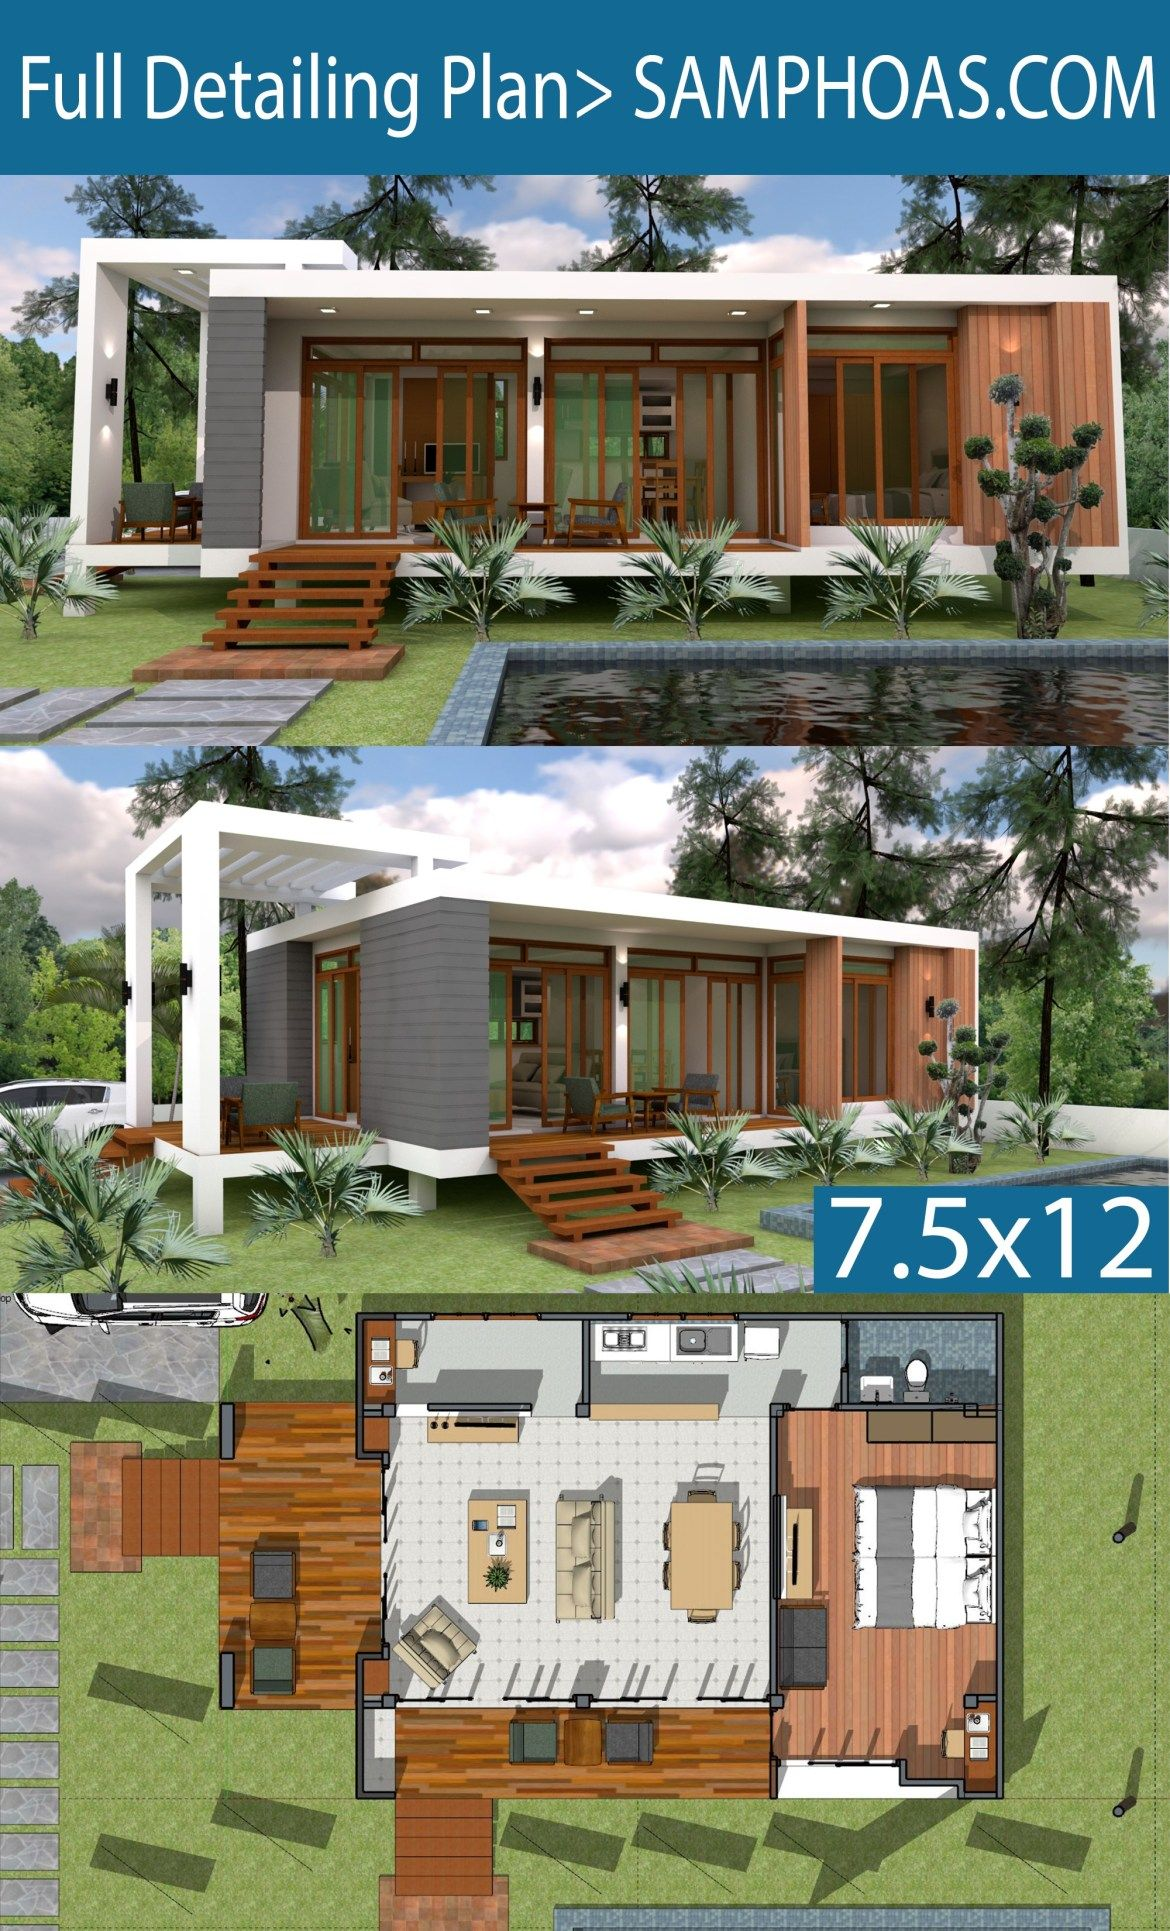 Sketchup Speed Build Home Design 7 5x12m Modern Small